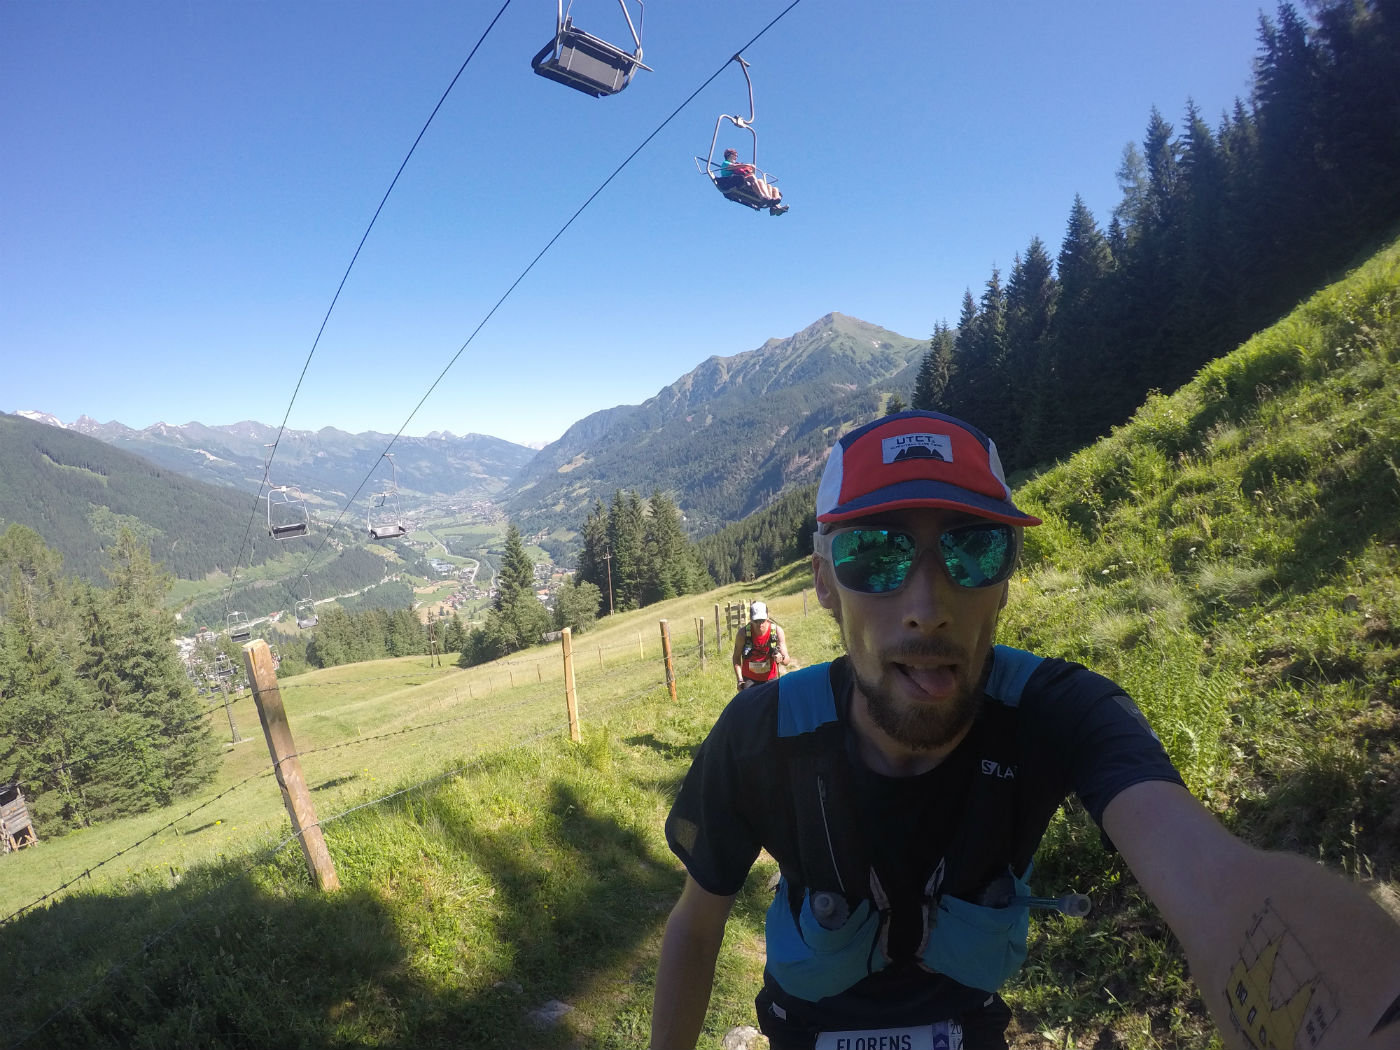 Crossing underneath a chair lift during the Infinite Trails World Championships